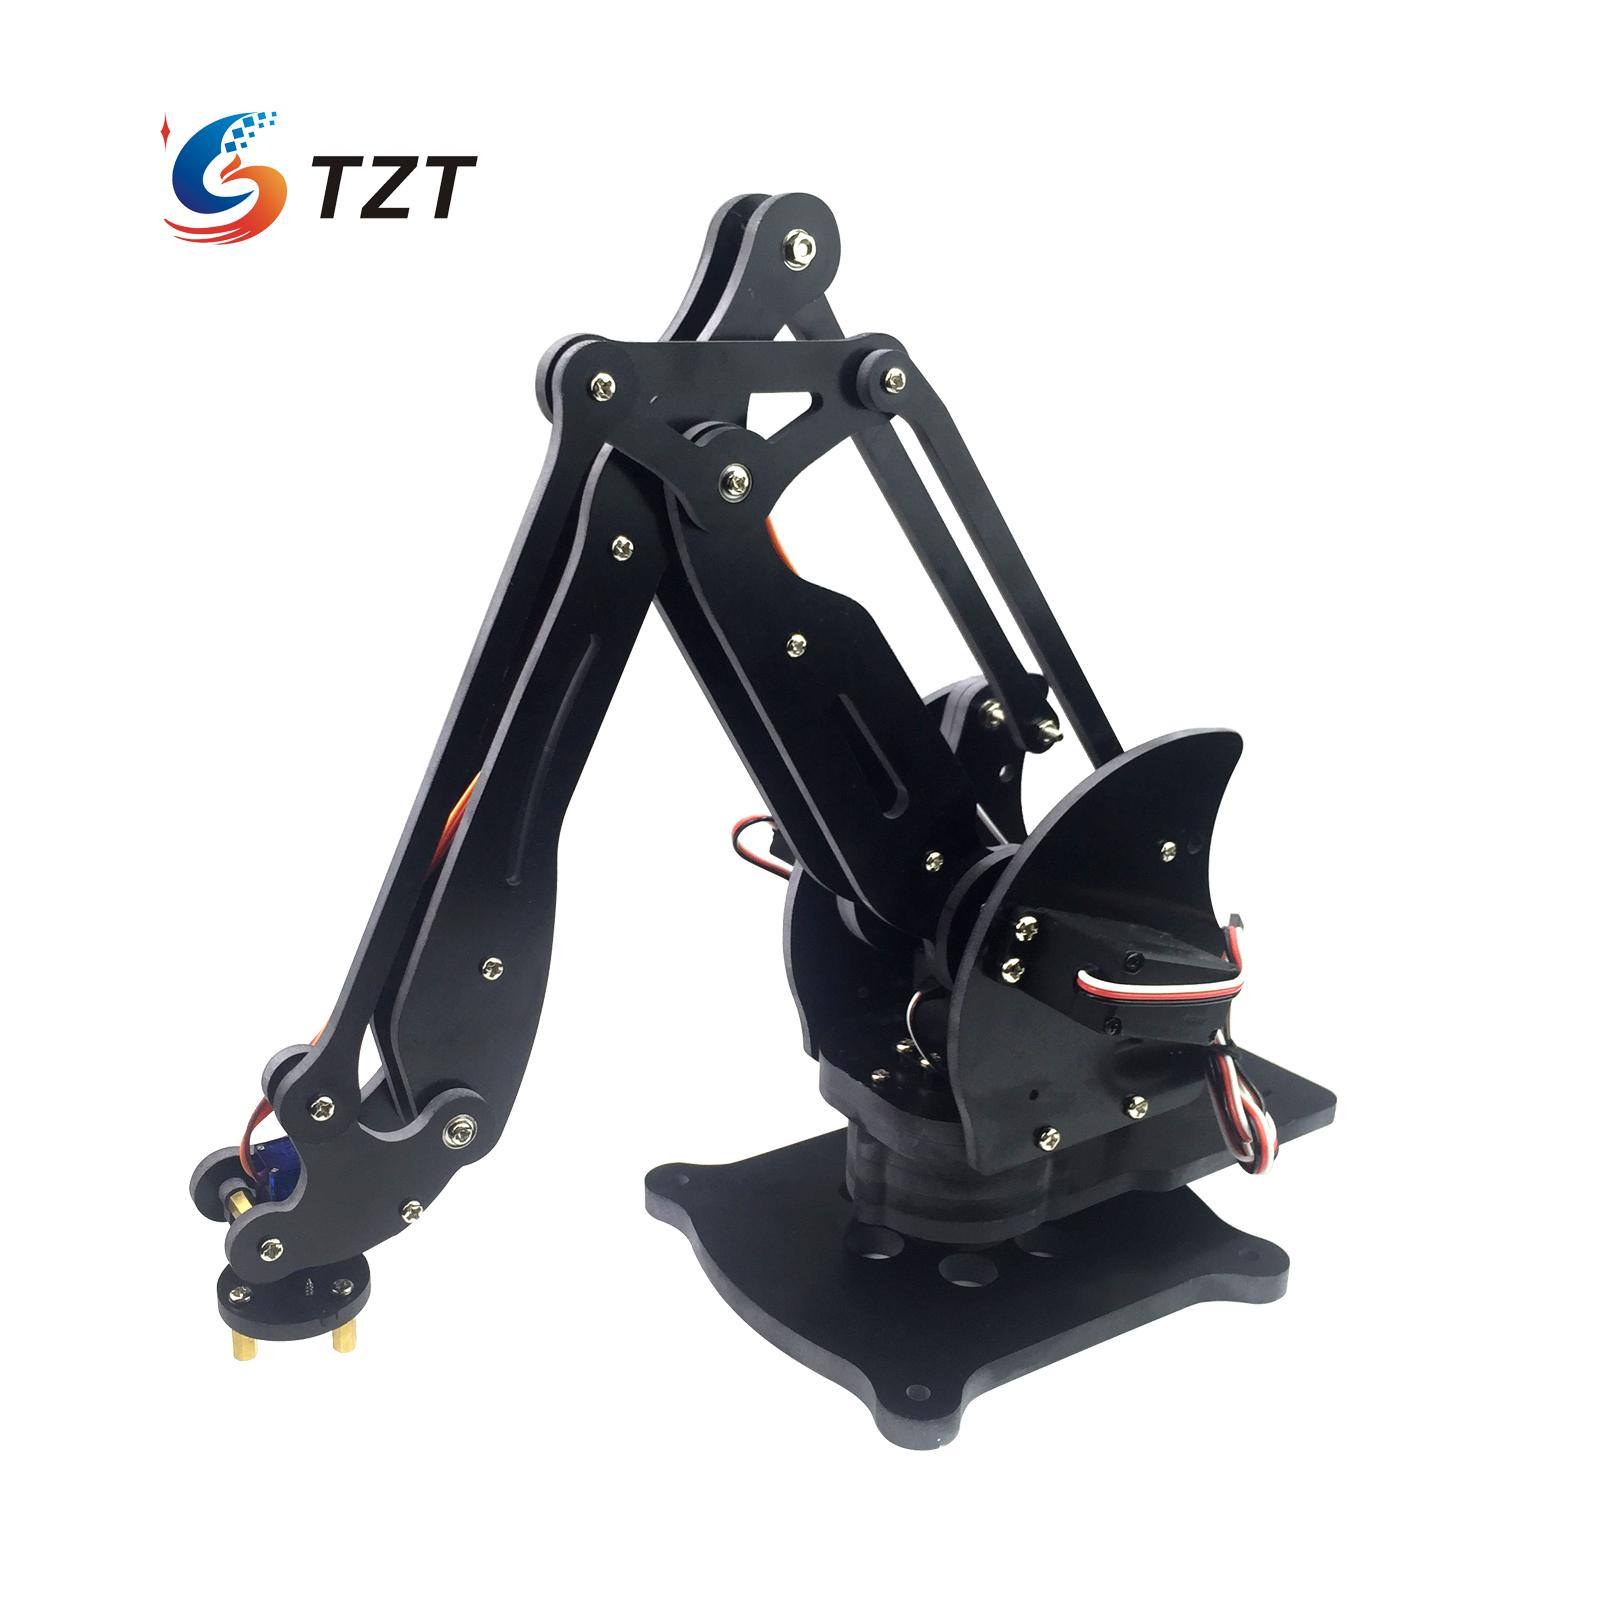 Assembled 4DOF Mechanical Robot Arm Clamp Claw Manipulator Arm with Servos PVC,CNC Processing for Arduino DIY